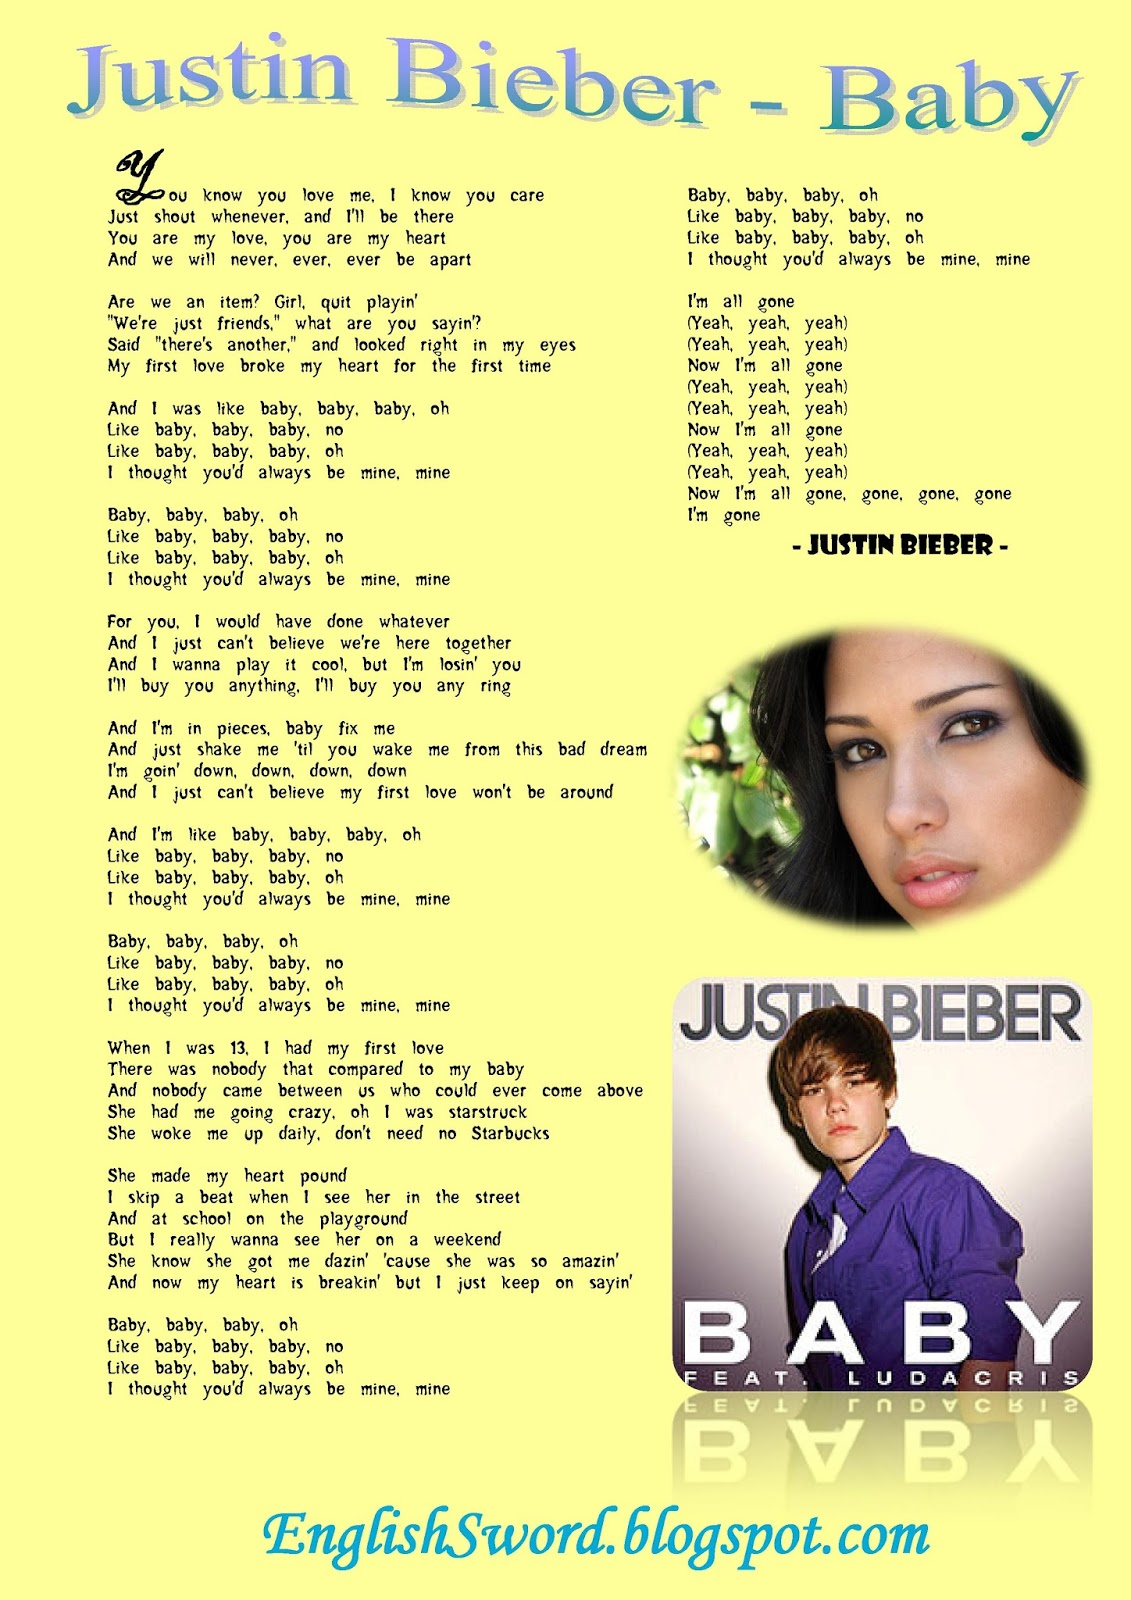 Justin Bieber Baby Song Mp3 Free Download : justin, bieber, download, Lyrics, Center:, Justin, Bieber, Download